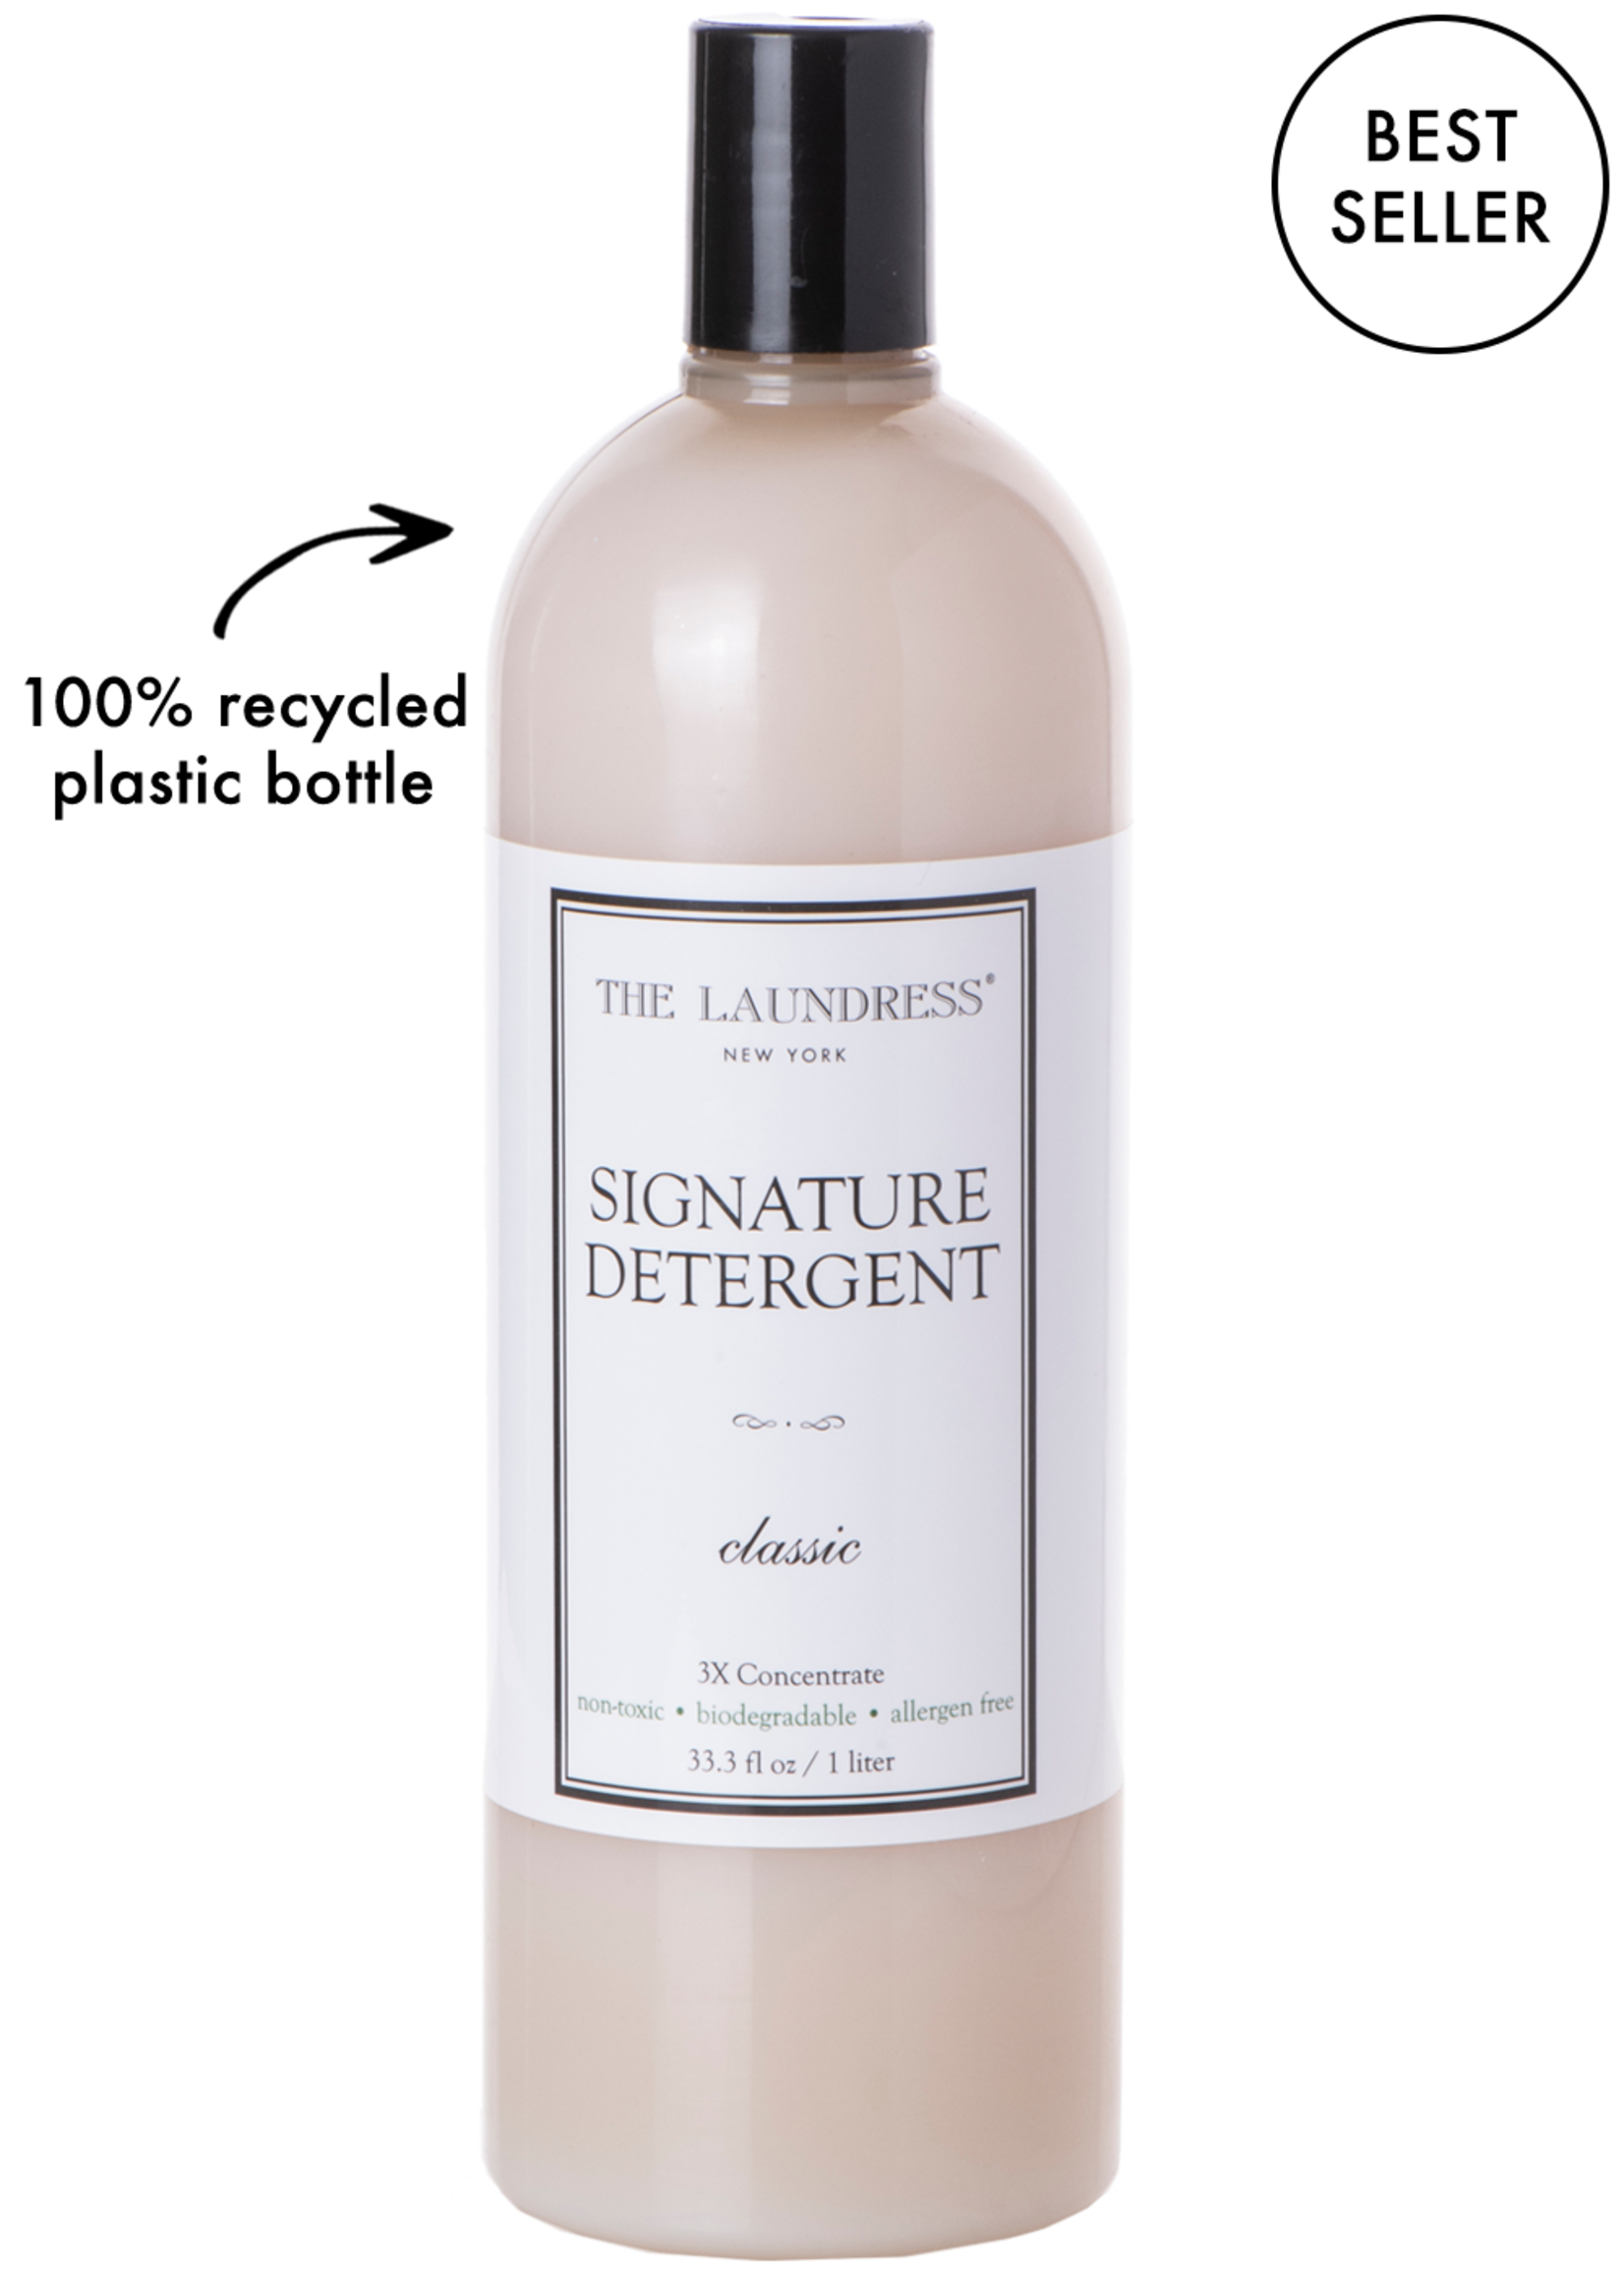 The Laundress New York Signature Detergent